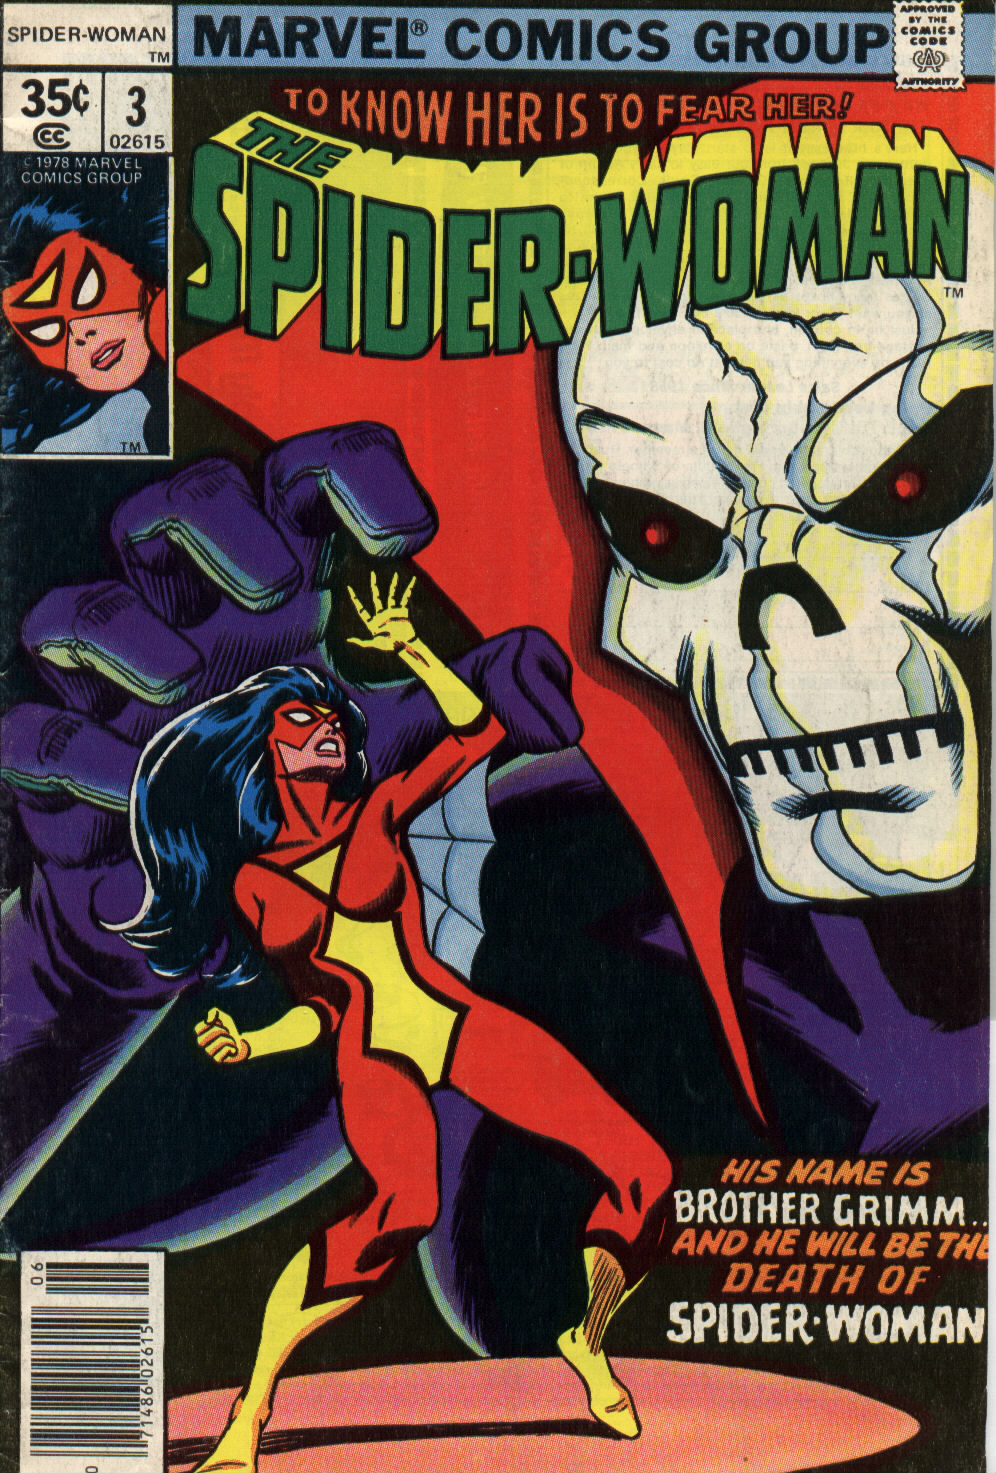 Spider-Woman (1978) issue 3 - Page 1